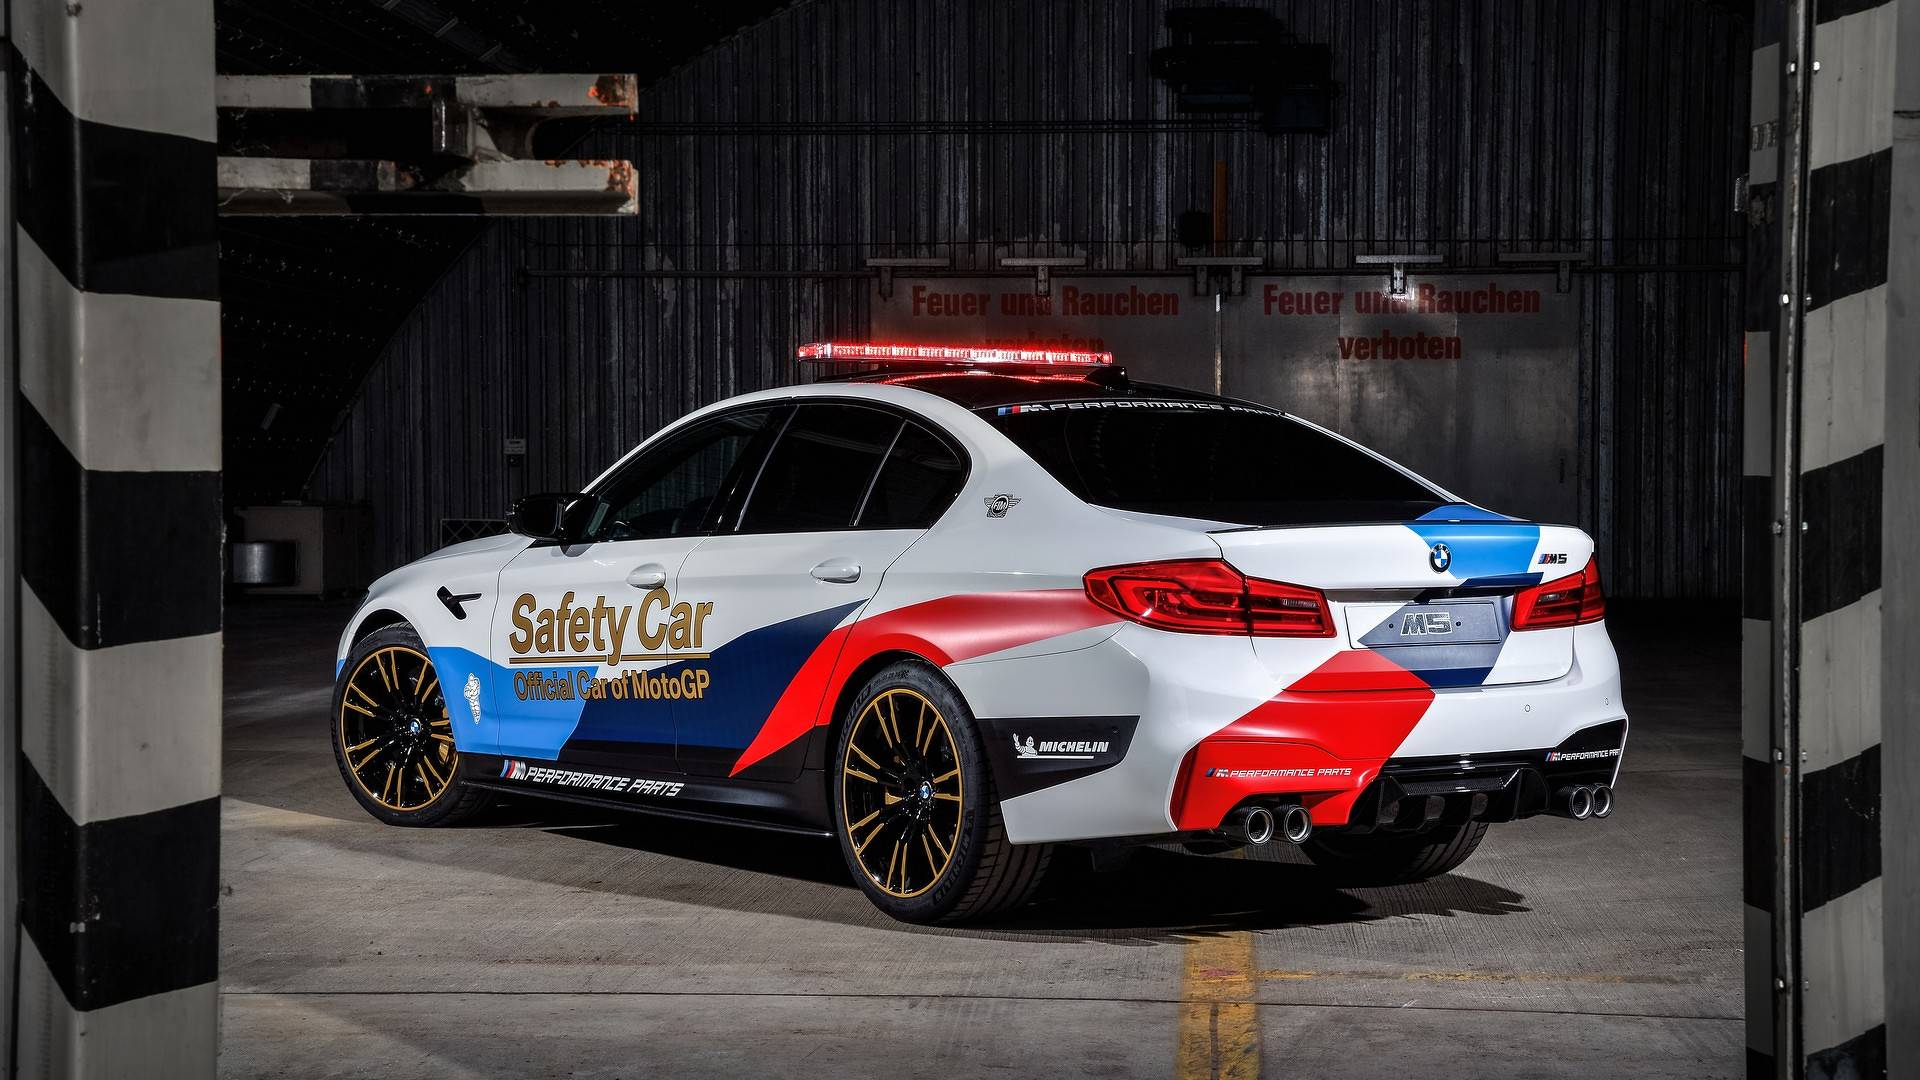 bmw-m5-motogp-safety-car (18)